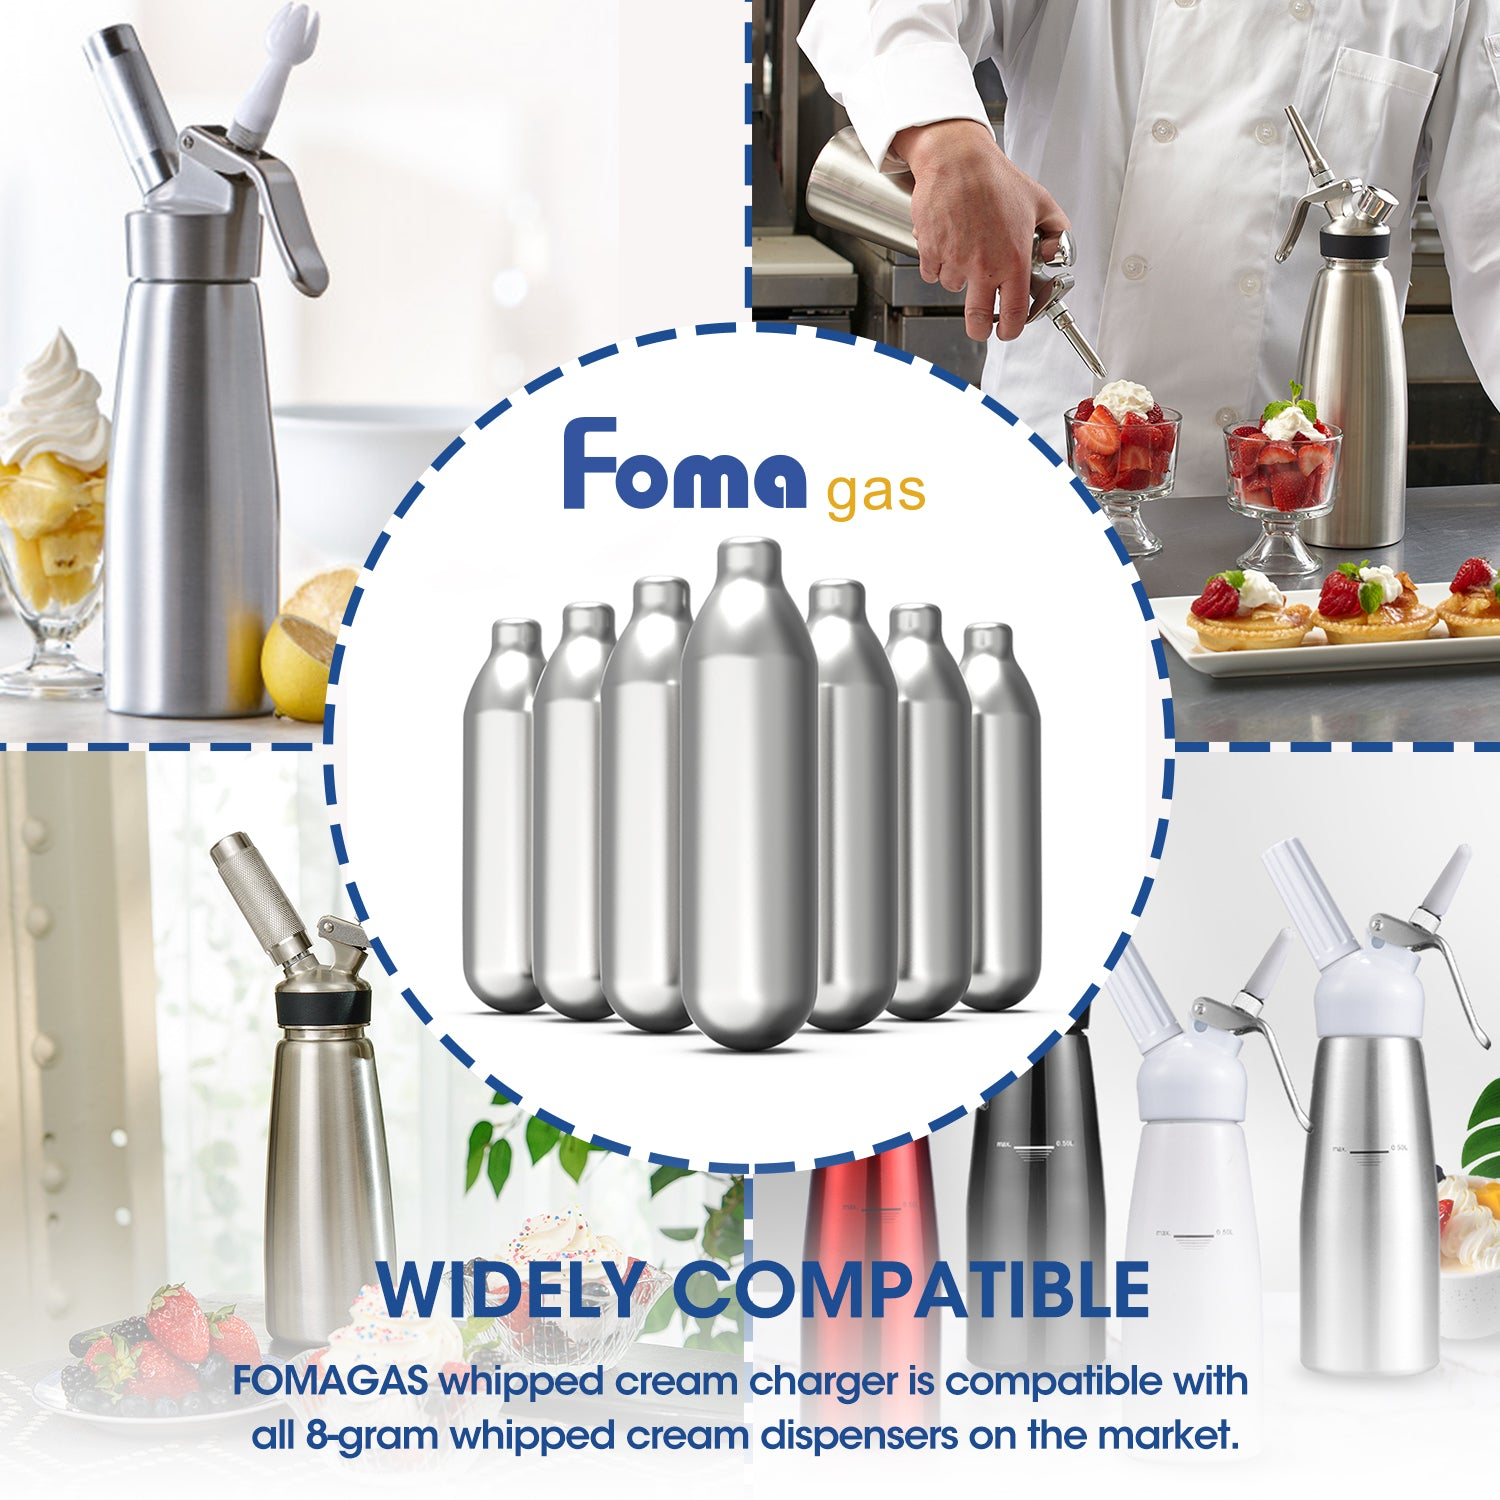 FomaGas 8g N2O Whipped Cream Chargers 120 Packs